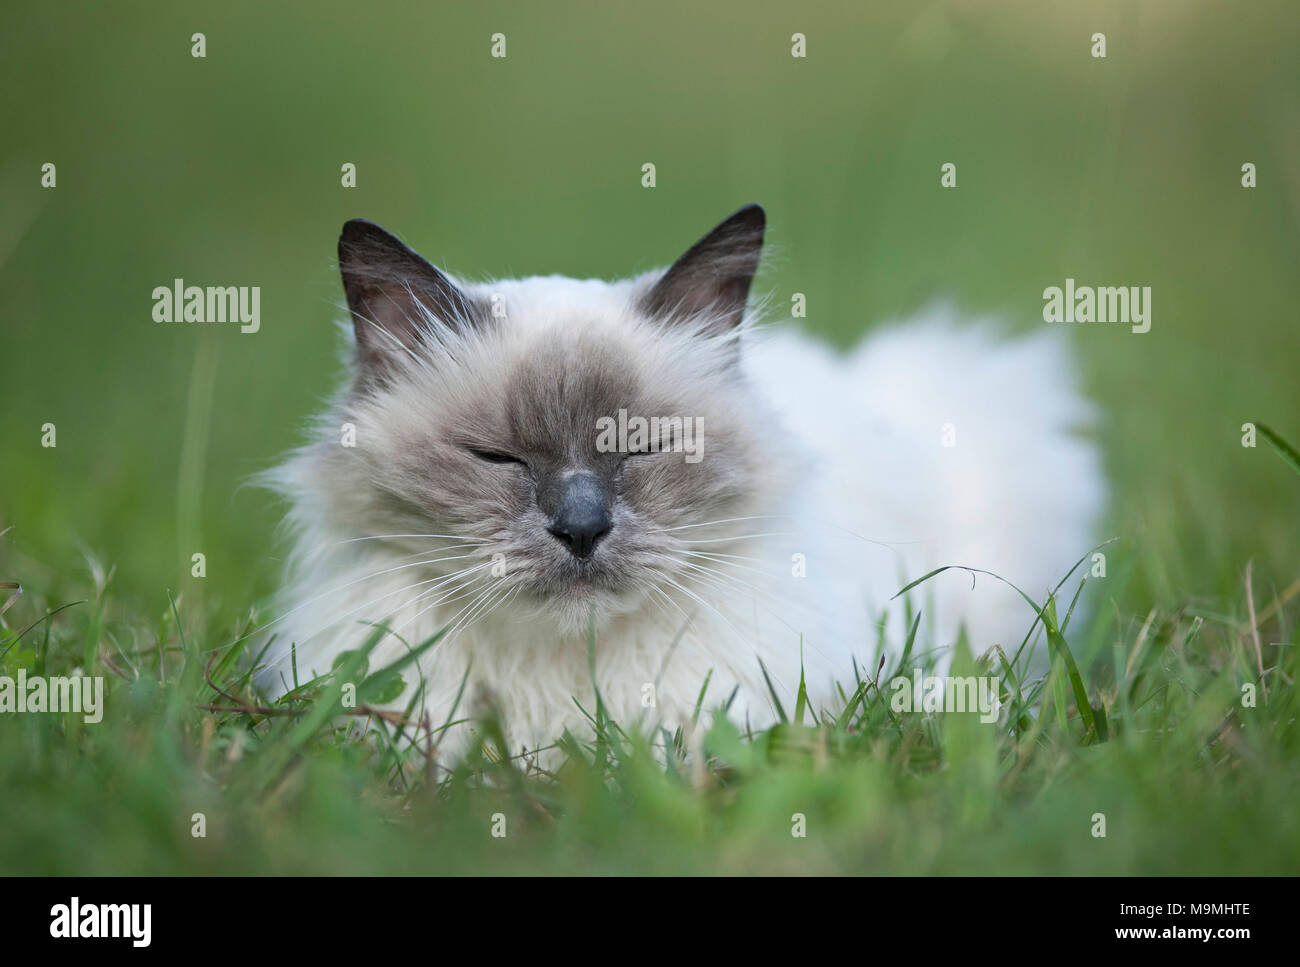 Sacred cat of Burma. Old cat dozing on a meadow. Germany - Stock Image